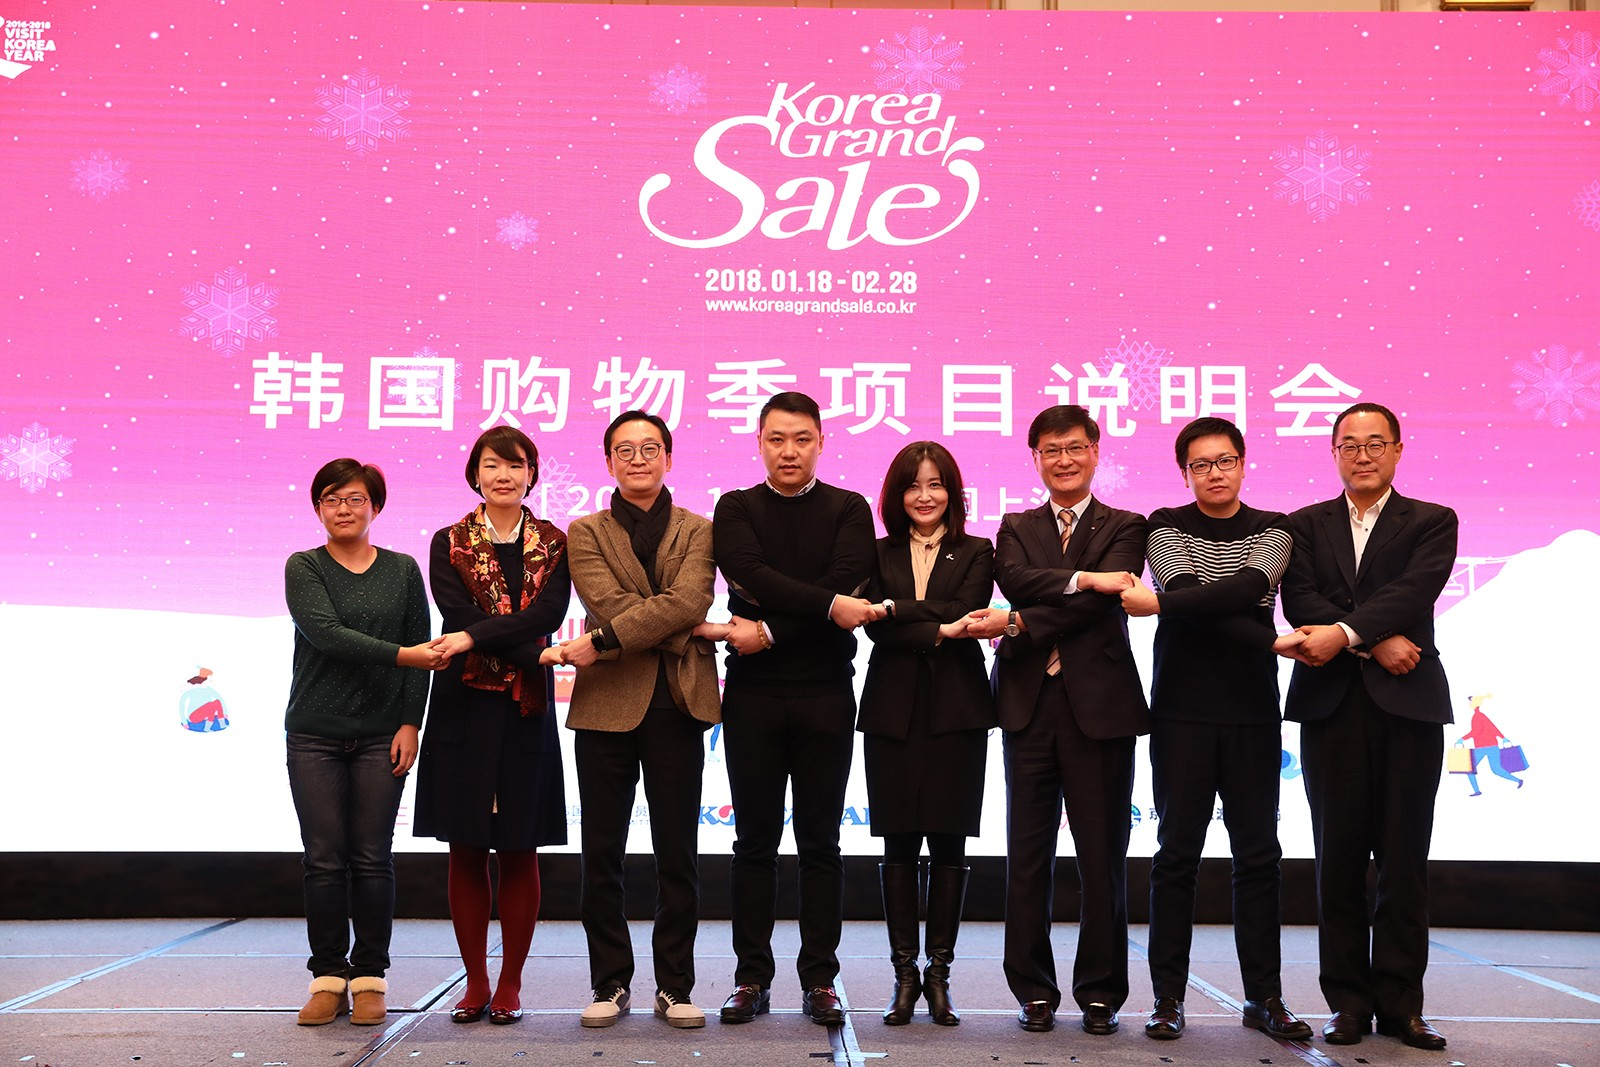 Korea Grand Sale 2018 Briefing Held Successfully in China (Dalian, Yantai, Shanghai)